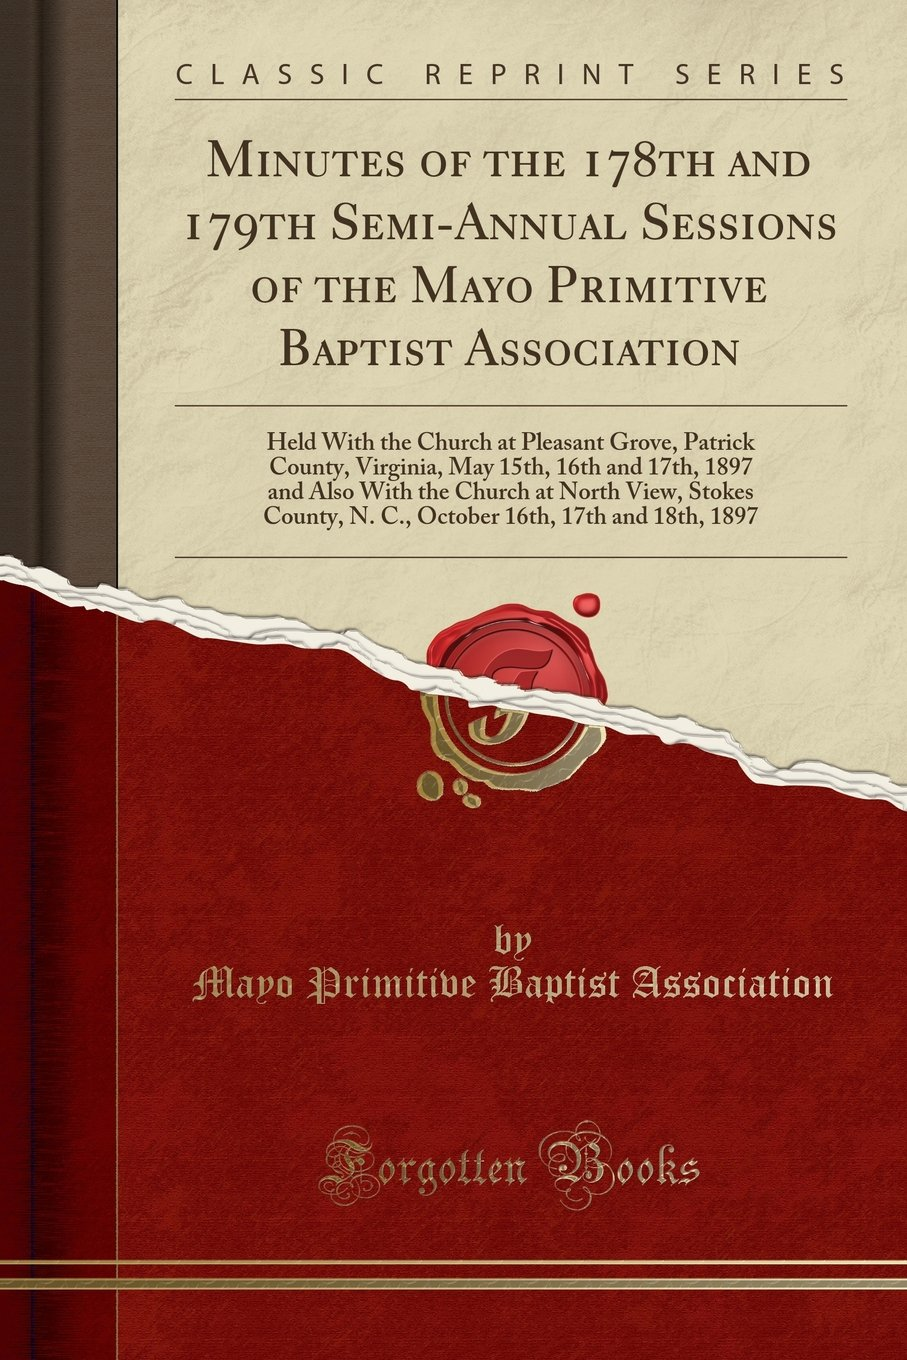 Minutes of the 178th and 179th Semi-Annual Sessions of the Mayo Primitive Baptist Association: Held With the Church at Pleasant Grove, Patrick County, ... at North View, Stokes County, N. C., Oc PDF